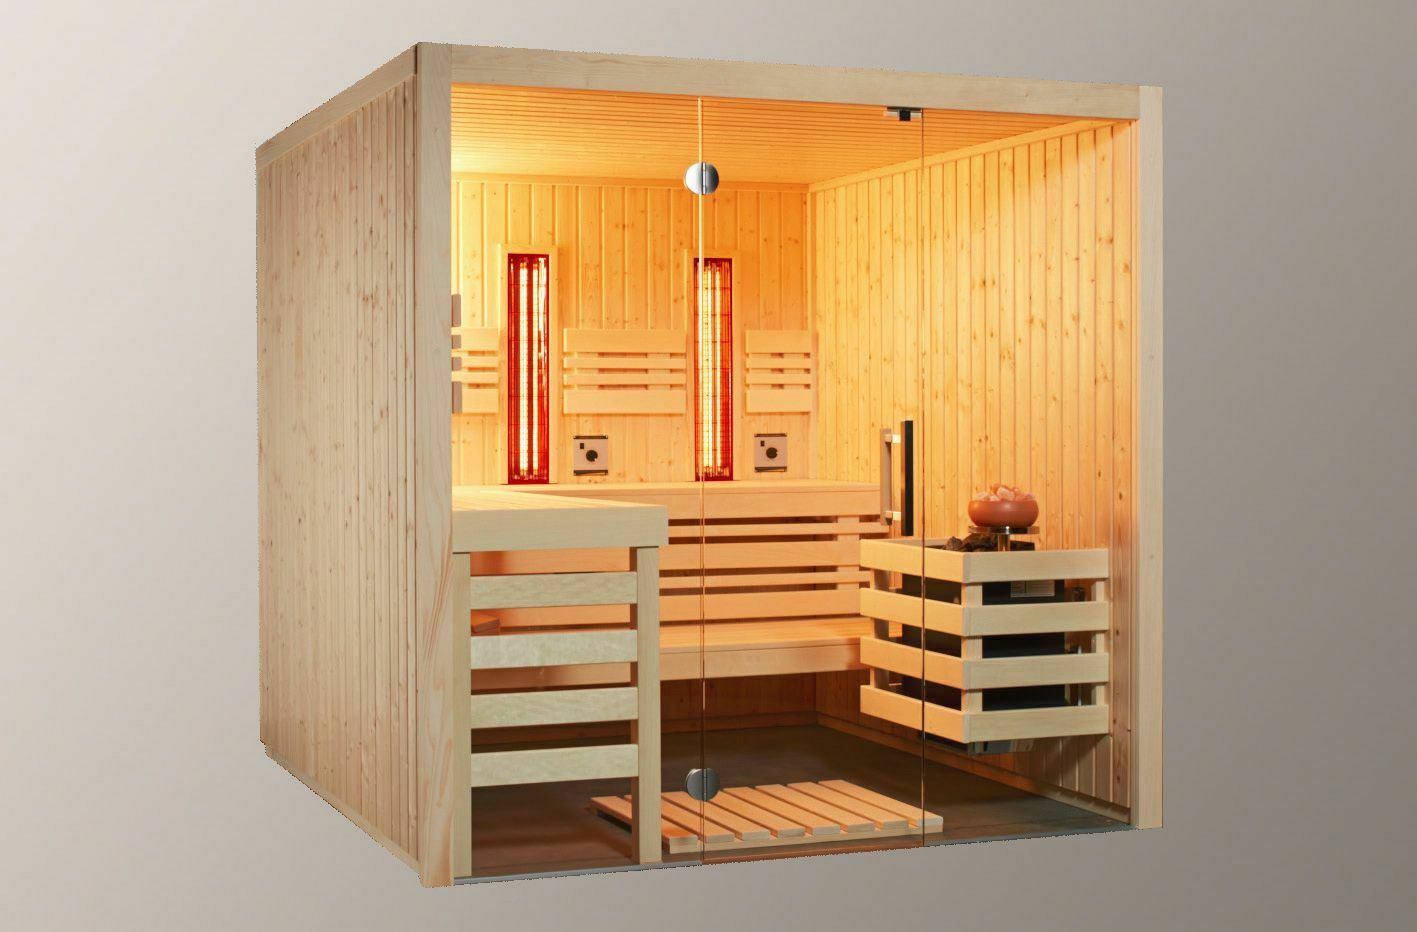 sauna mit glasfront und 2 infrarotstrahler 210 x 210 x 203 cm saunaofen bio eur. Black Bedroom Furniture Sets. Home Design Ideas